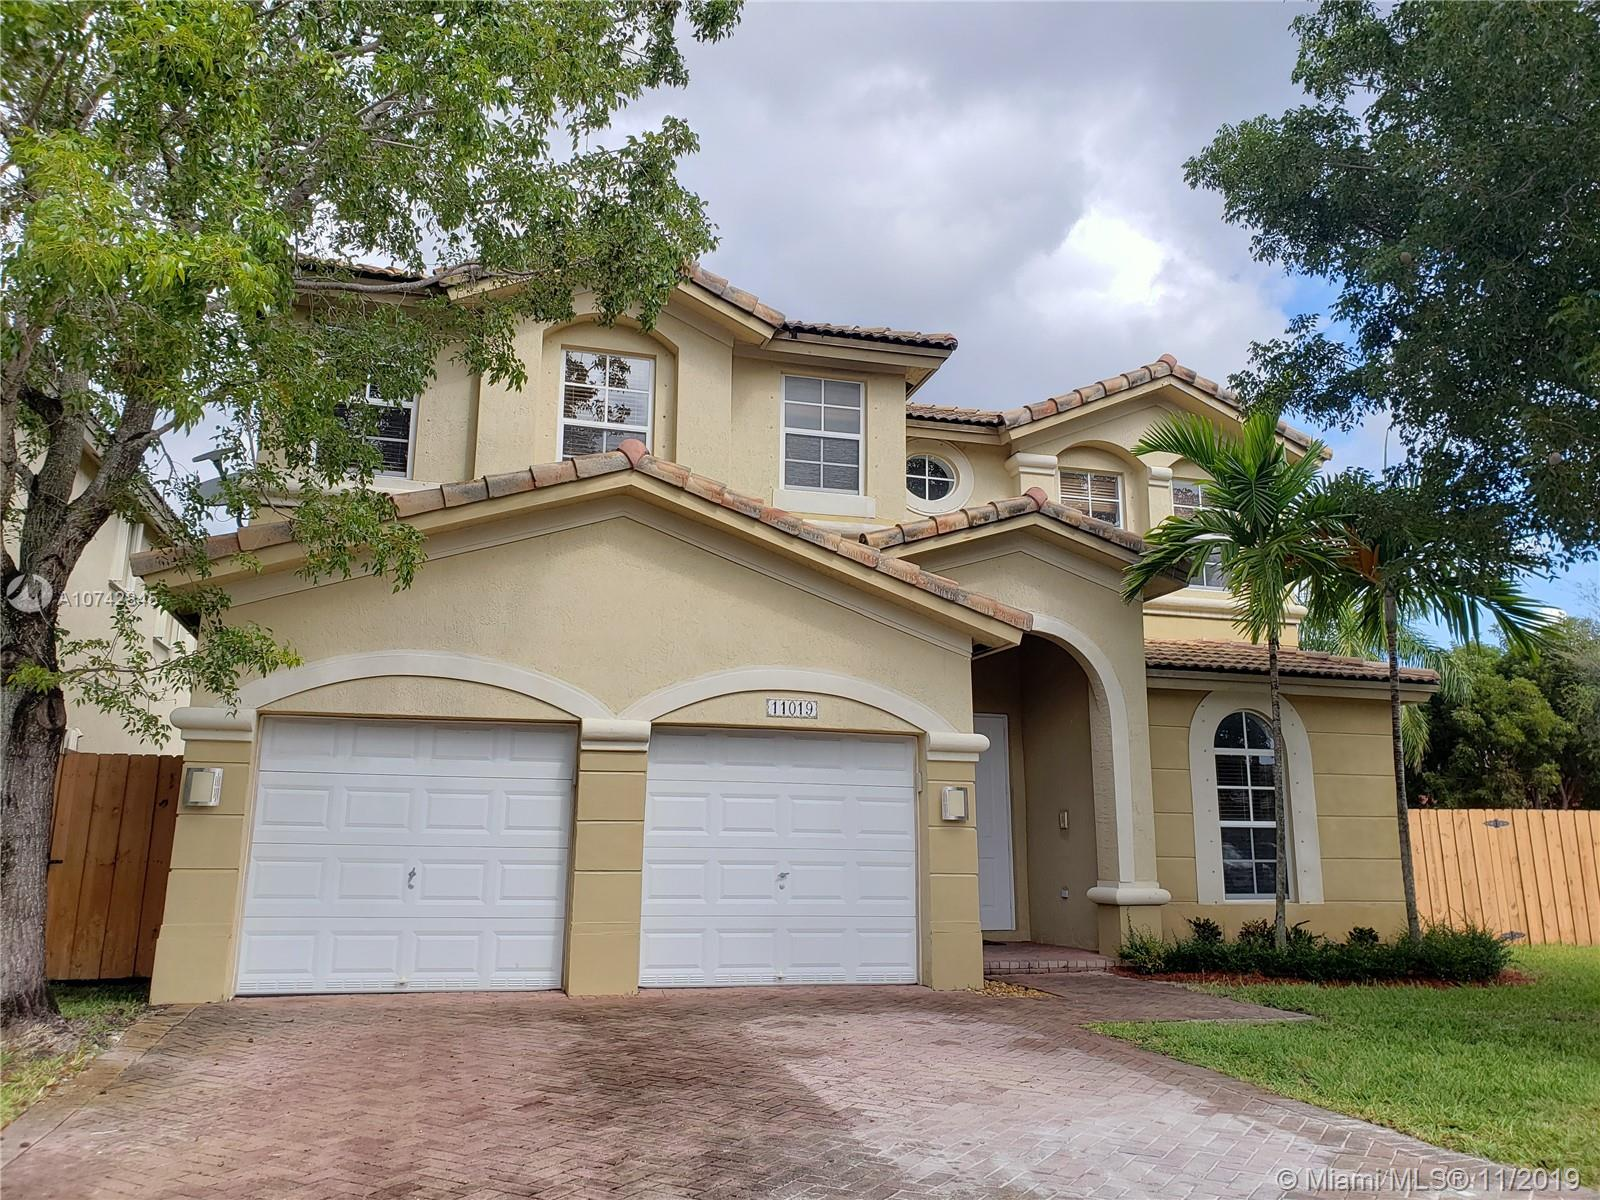 11019 NW 84th St, Doral, Florida